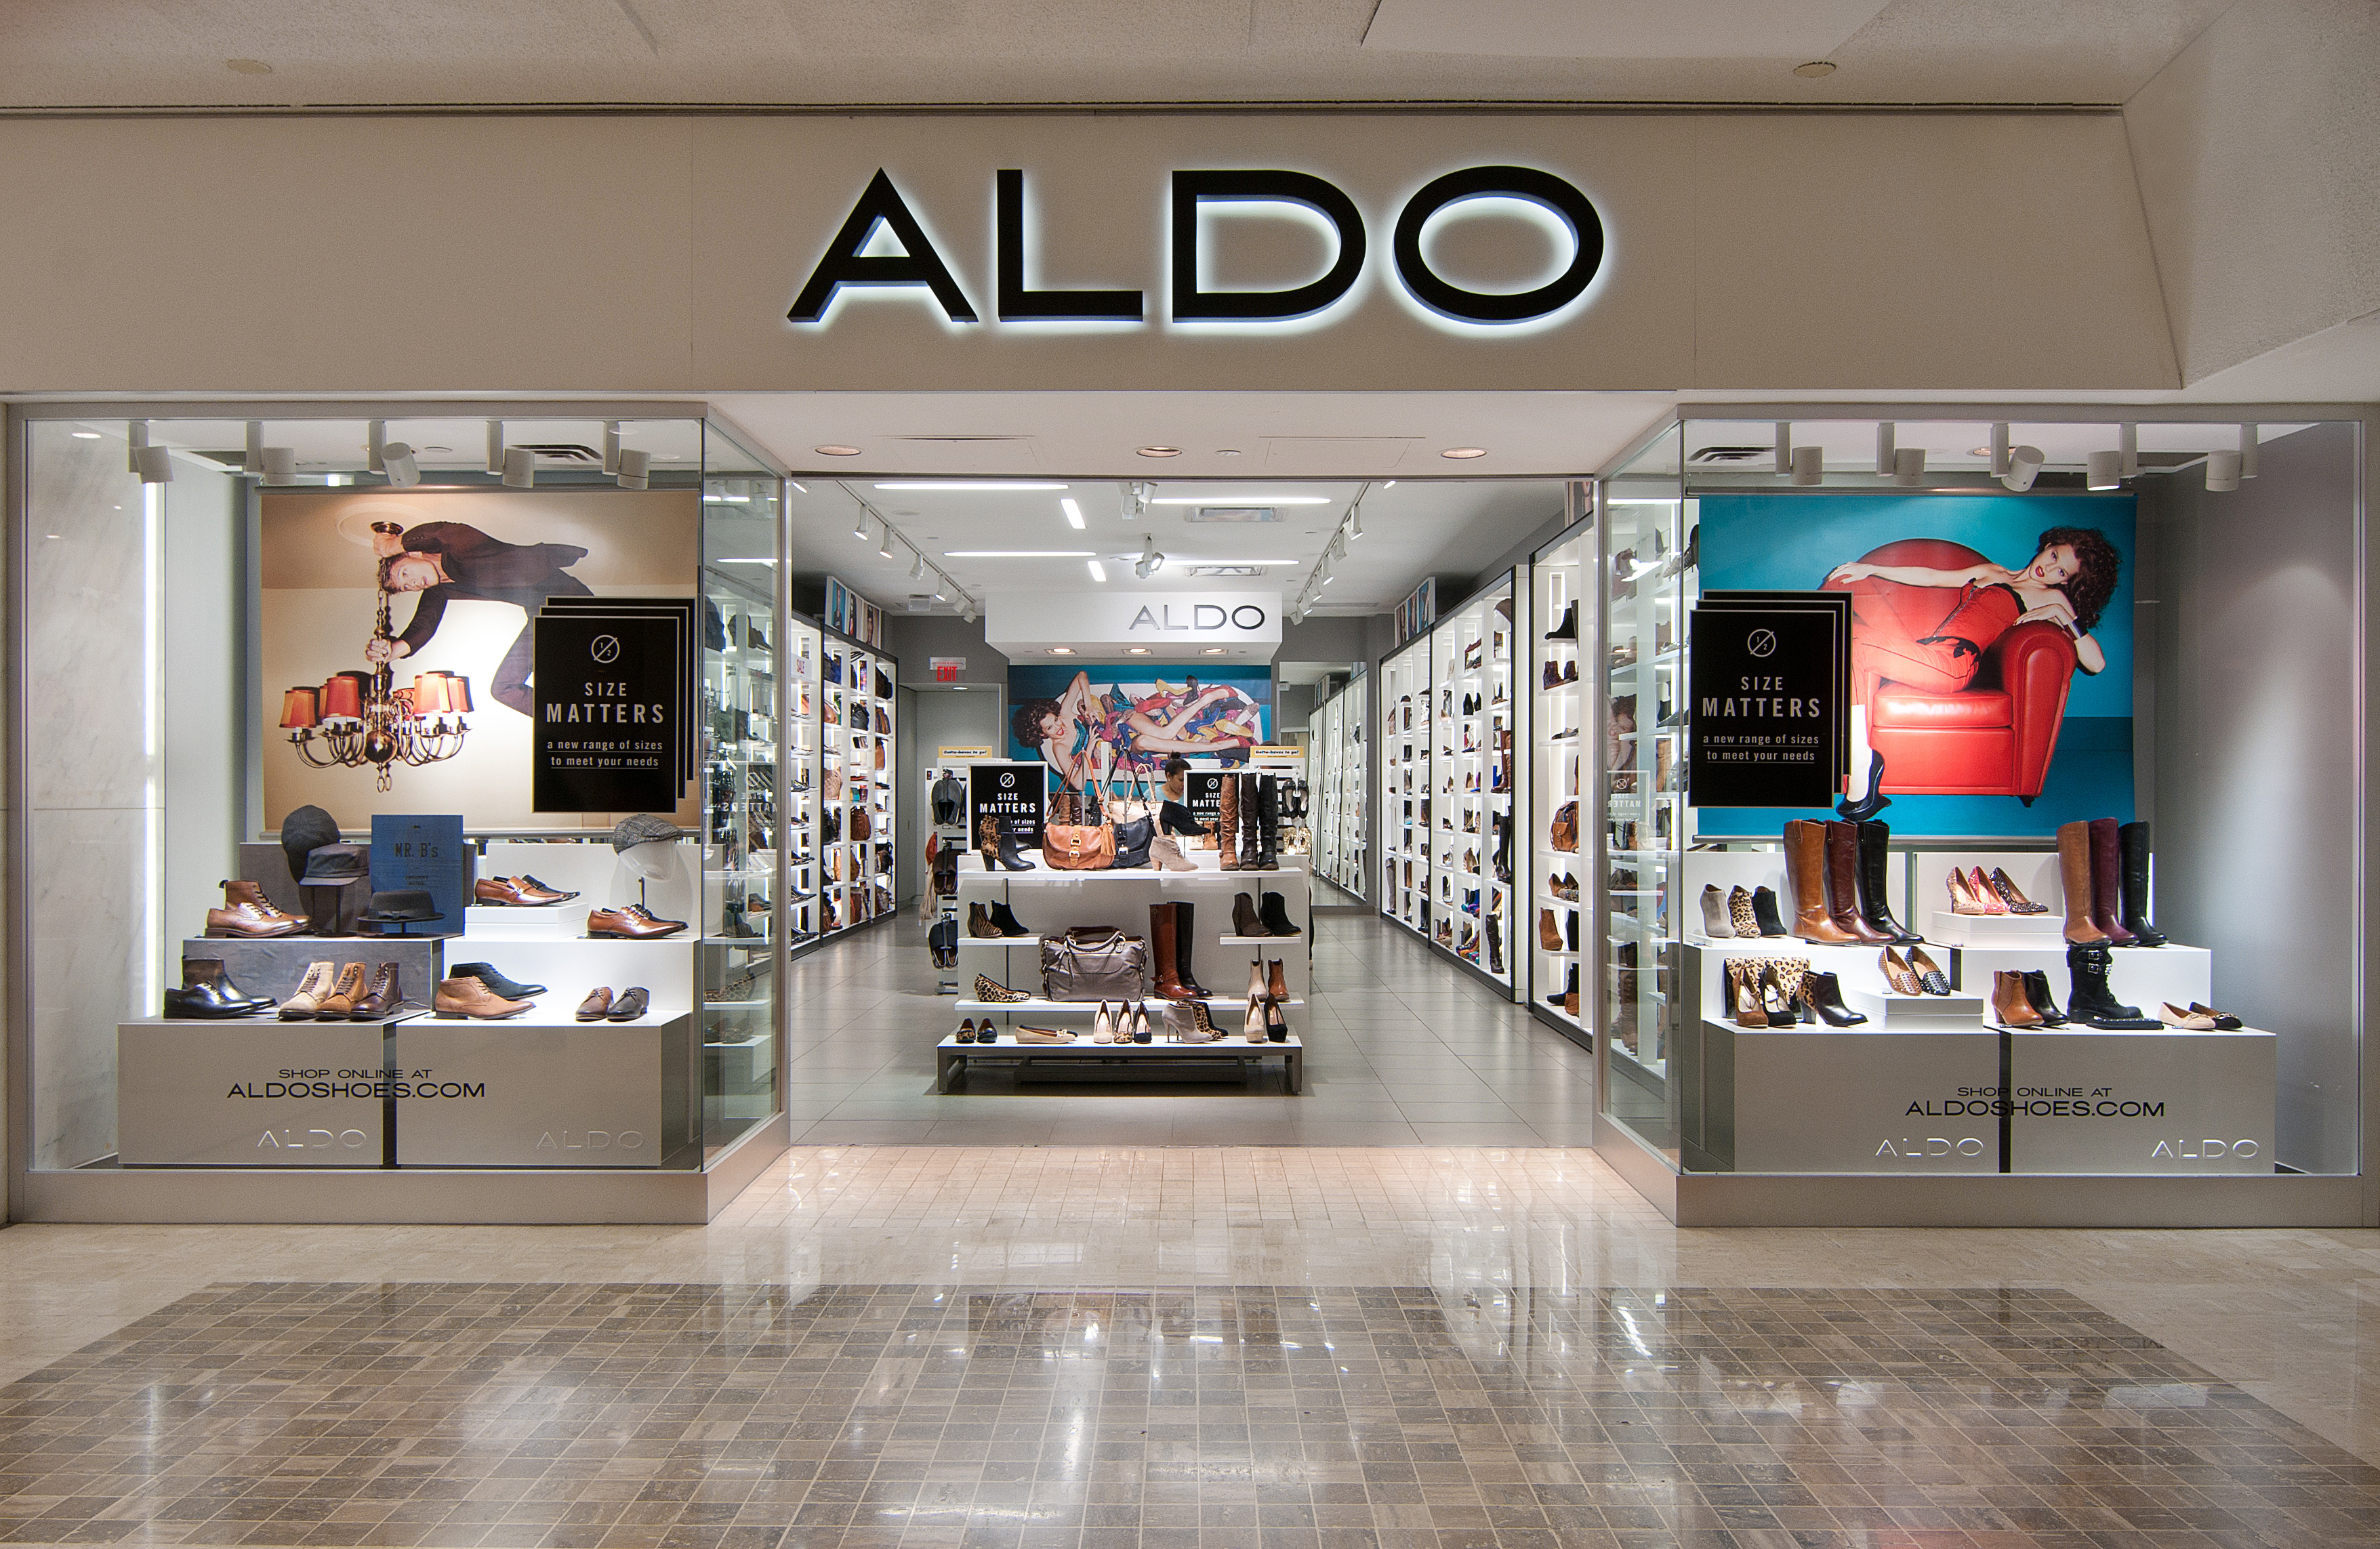 The ultimate destination for style-minded men and women, Aldo Shoes and accessories offer boundless options and of-the-moment styles to inspire you to live life out loud, your way, always.